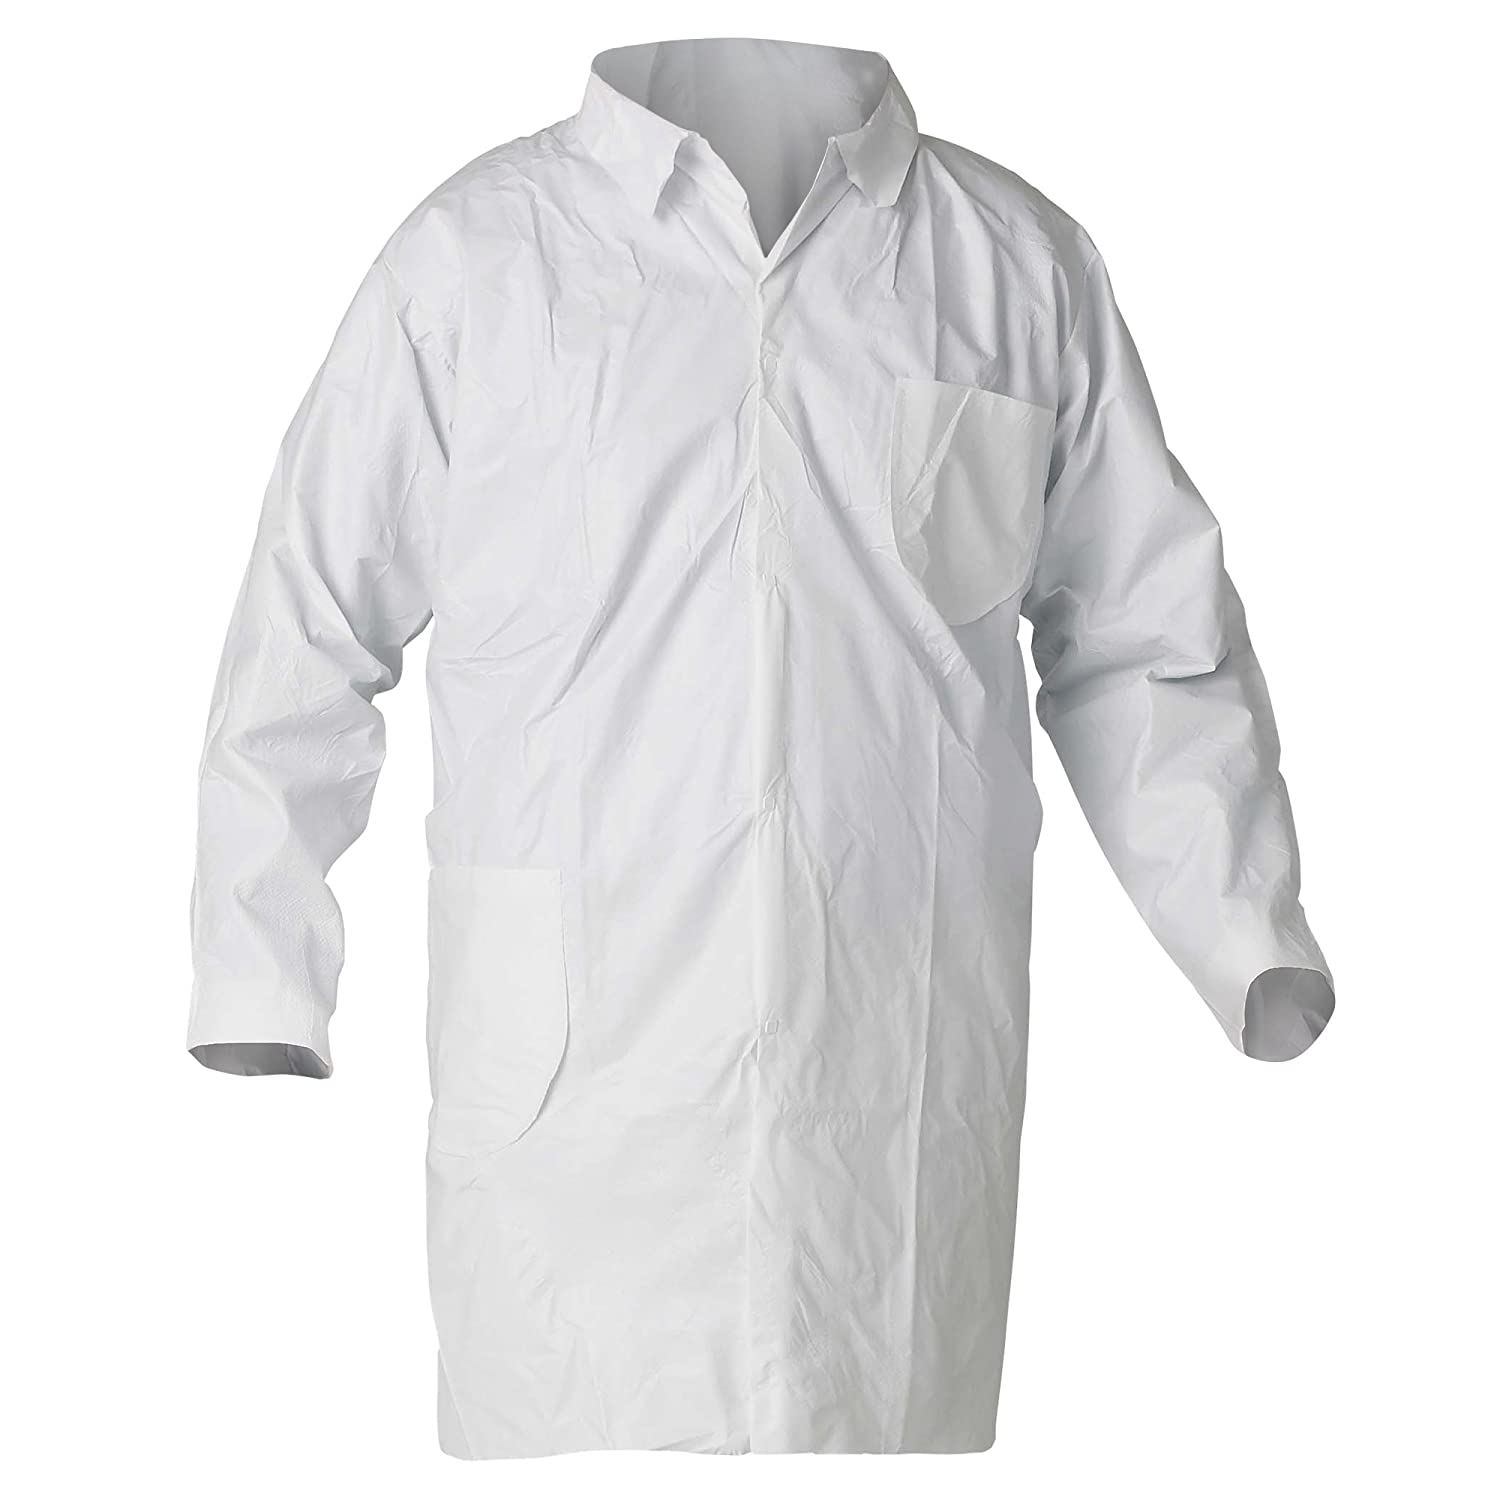 Kleenguard A40 Liquid & Particle Protection Lab Coats (44454), 4-Snap Closure, Knee Length, Open Wrists, White, XL, 30 / Case: Industrial & Scientific